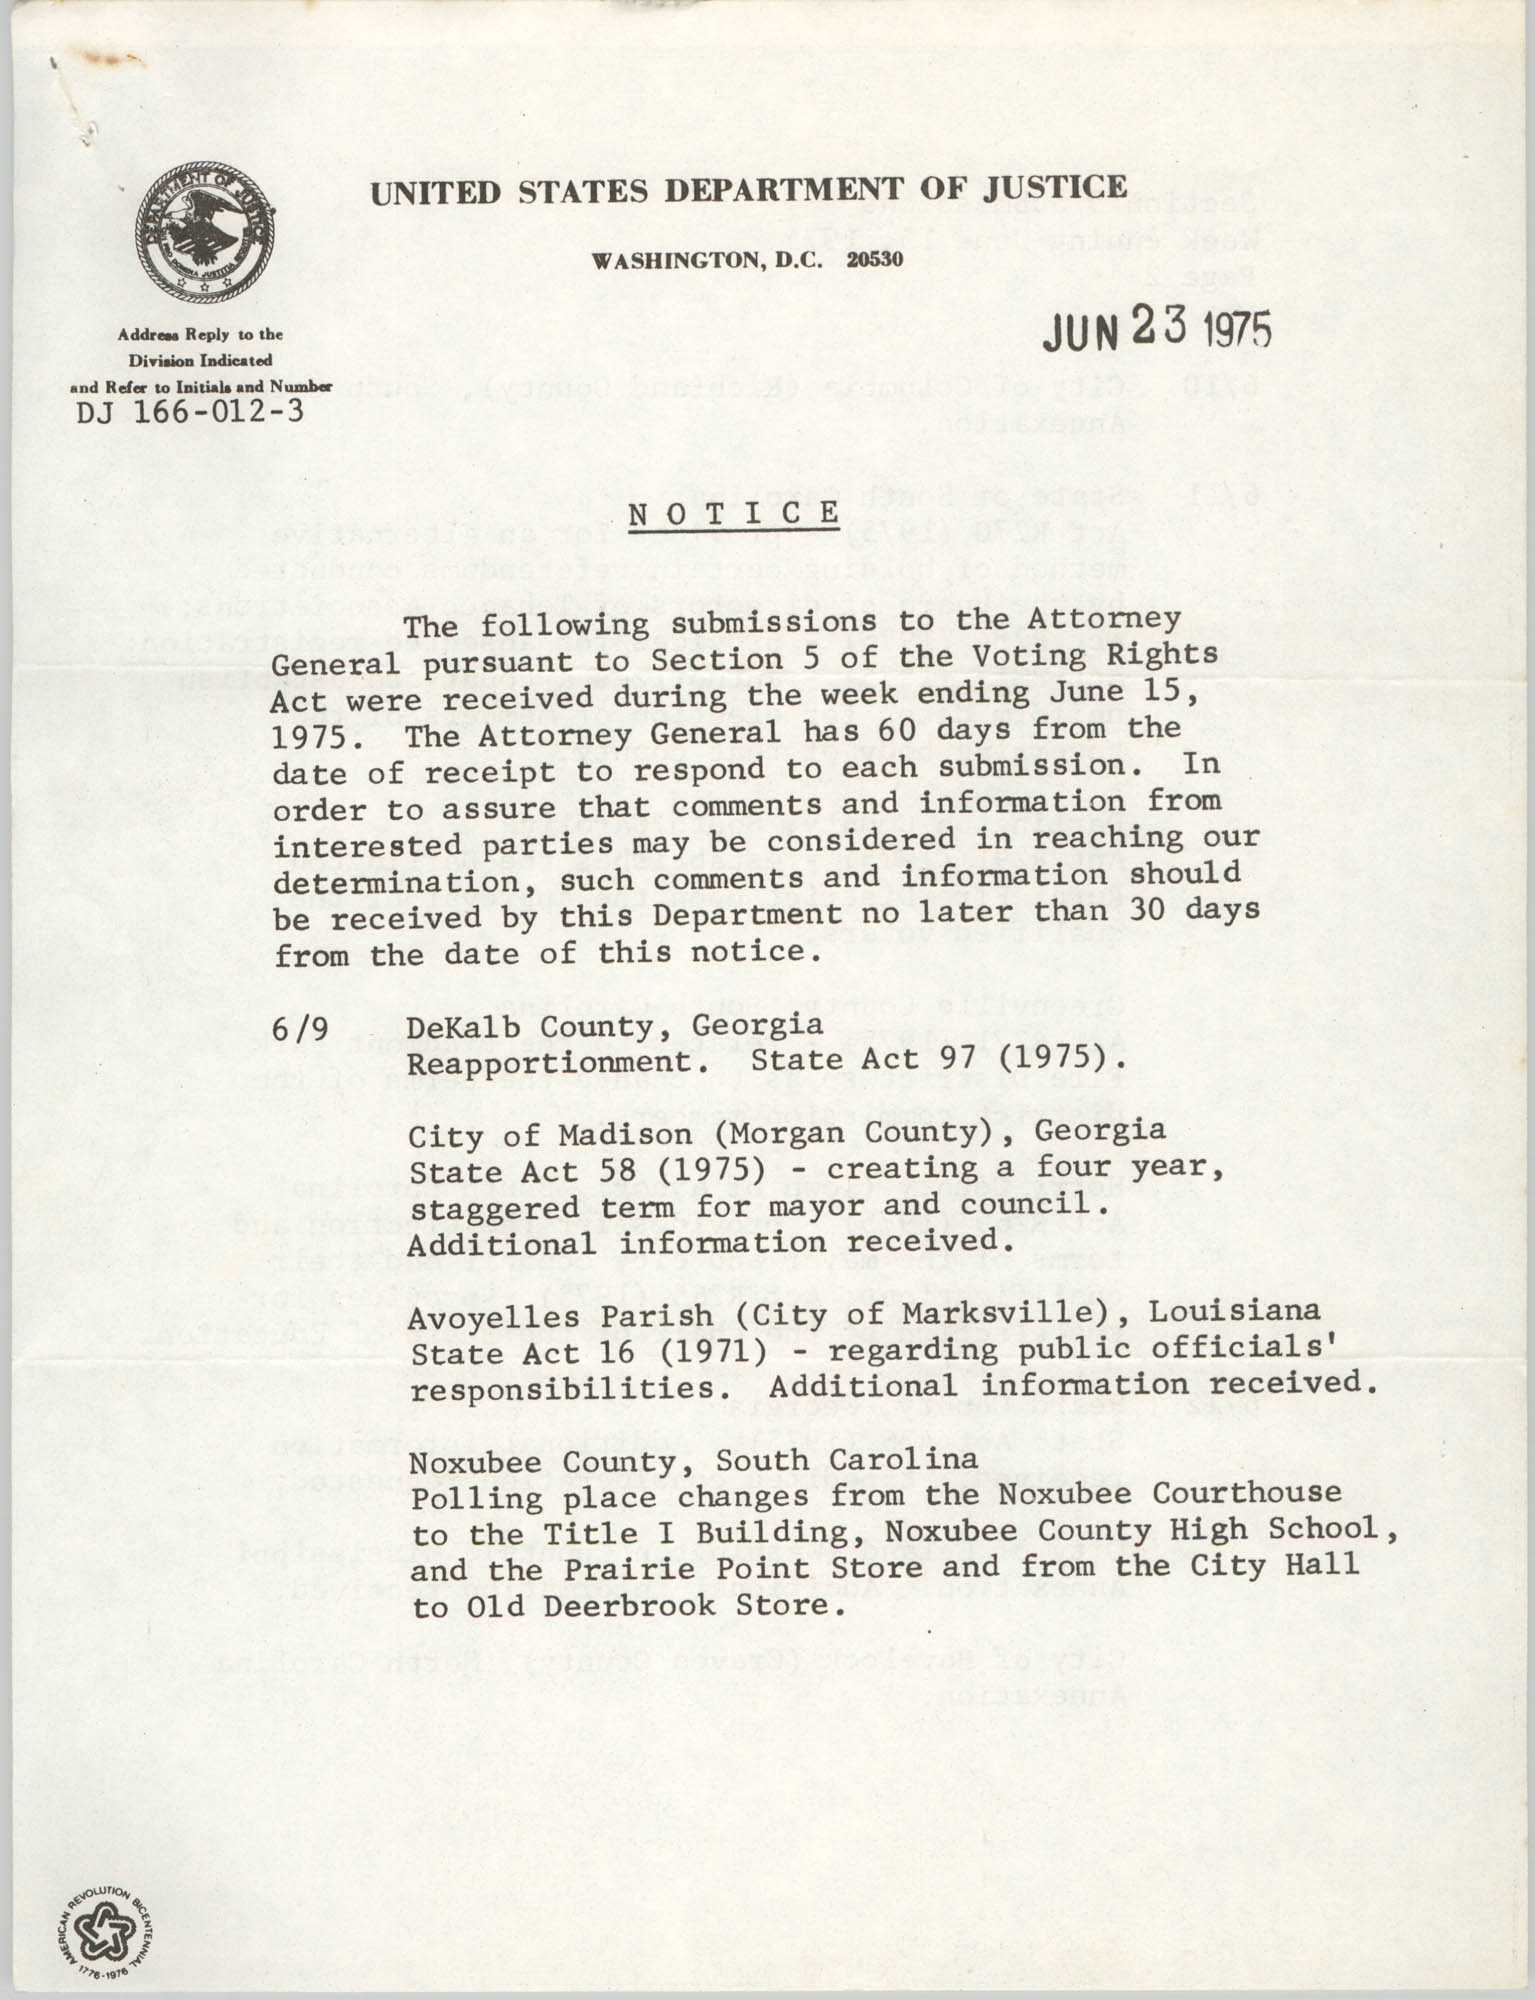 United States Department of Justice Notice, June 23, 1975